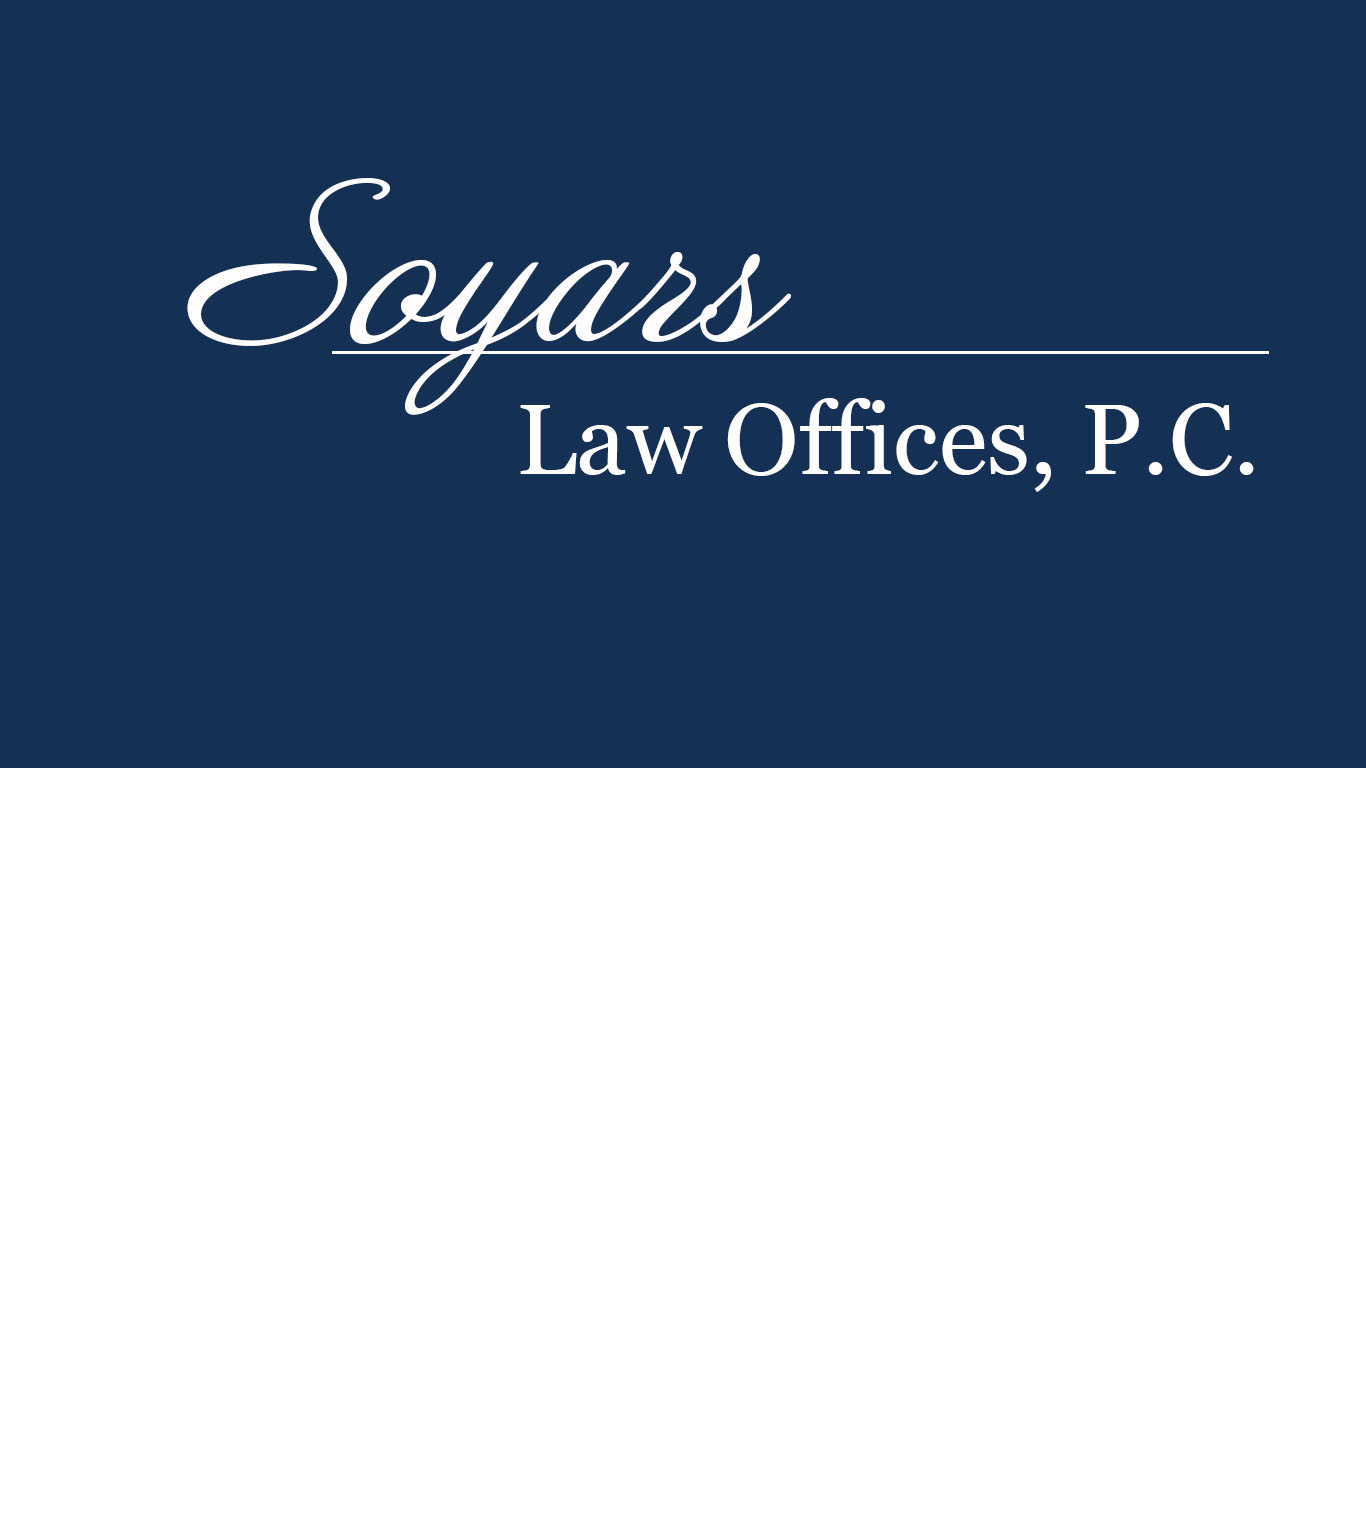 Soyars Law Offices, P.C